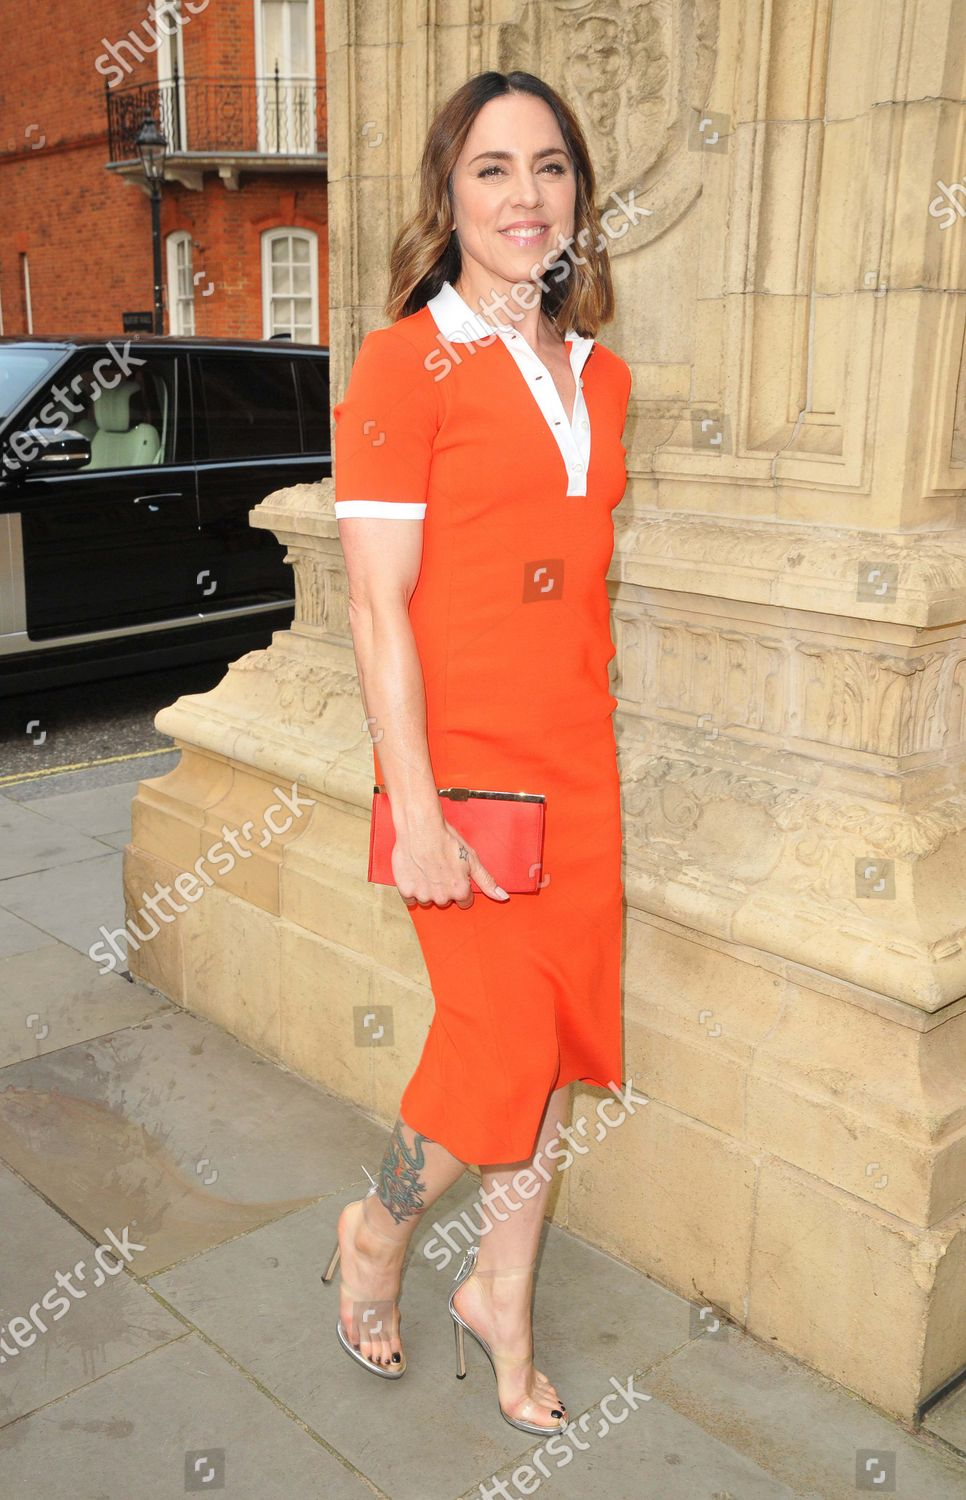 Stock photo of The 'Best of The West End' Concert at the Royal Albert Hall, London, UK - 21 Jul 2021